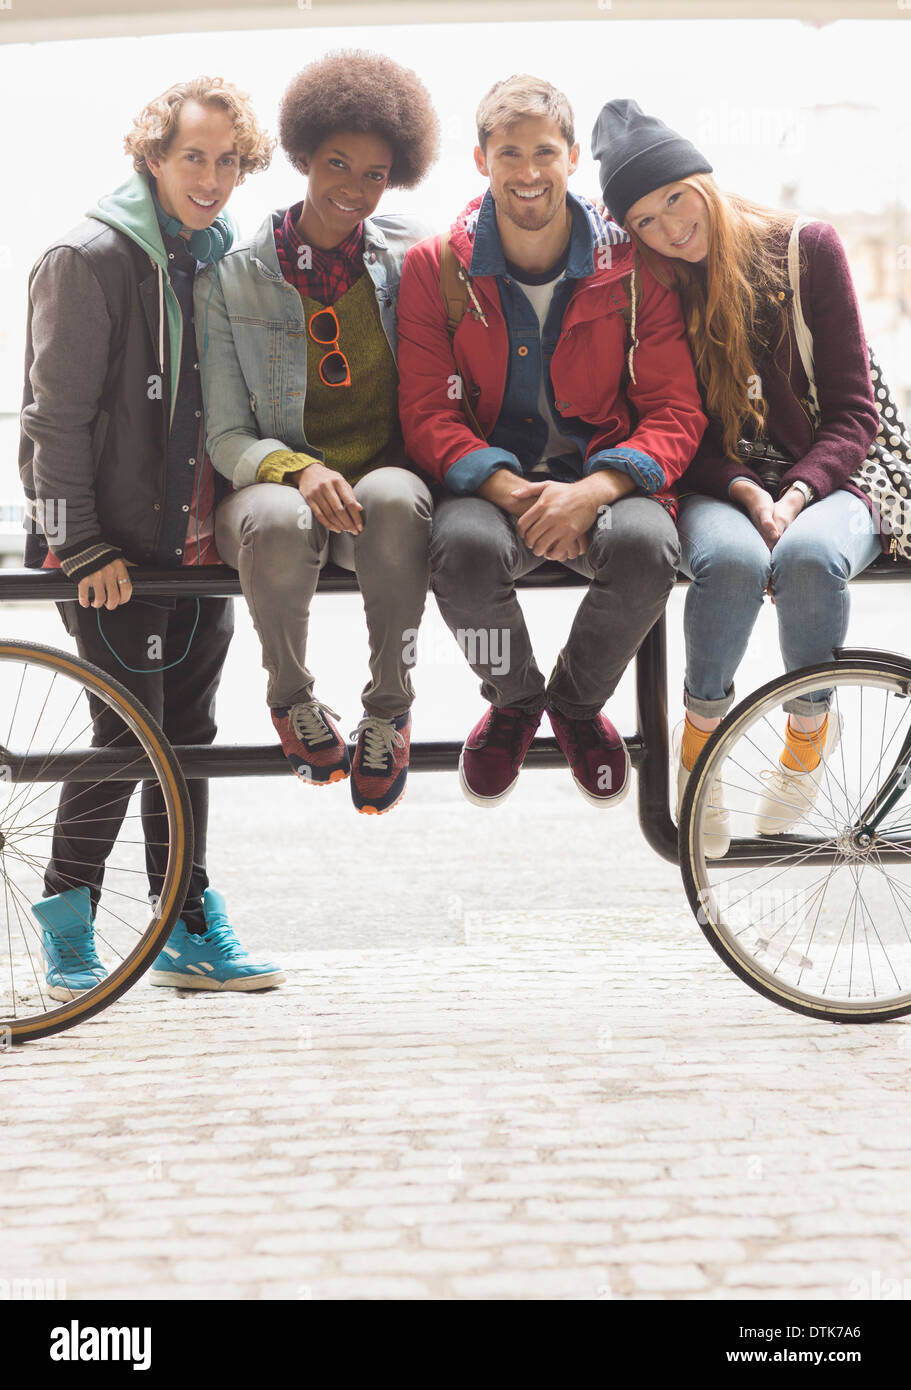 Friends smiling together on urban bike rack Stock Photo